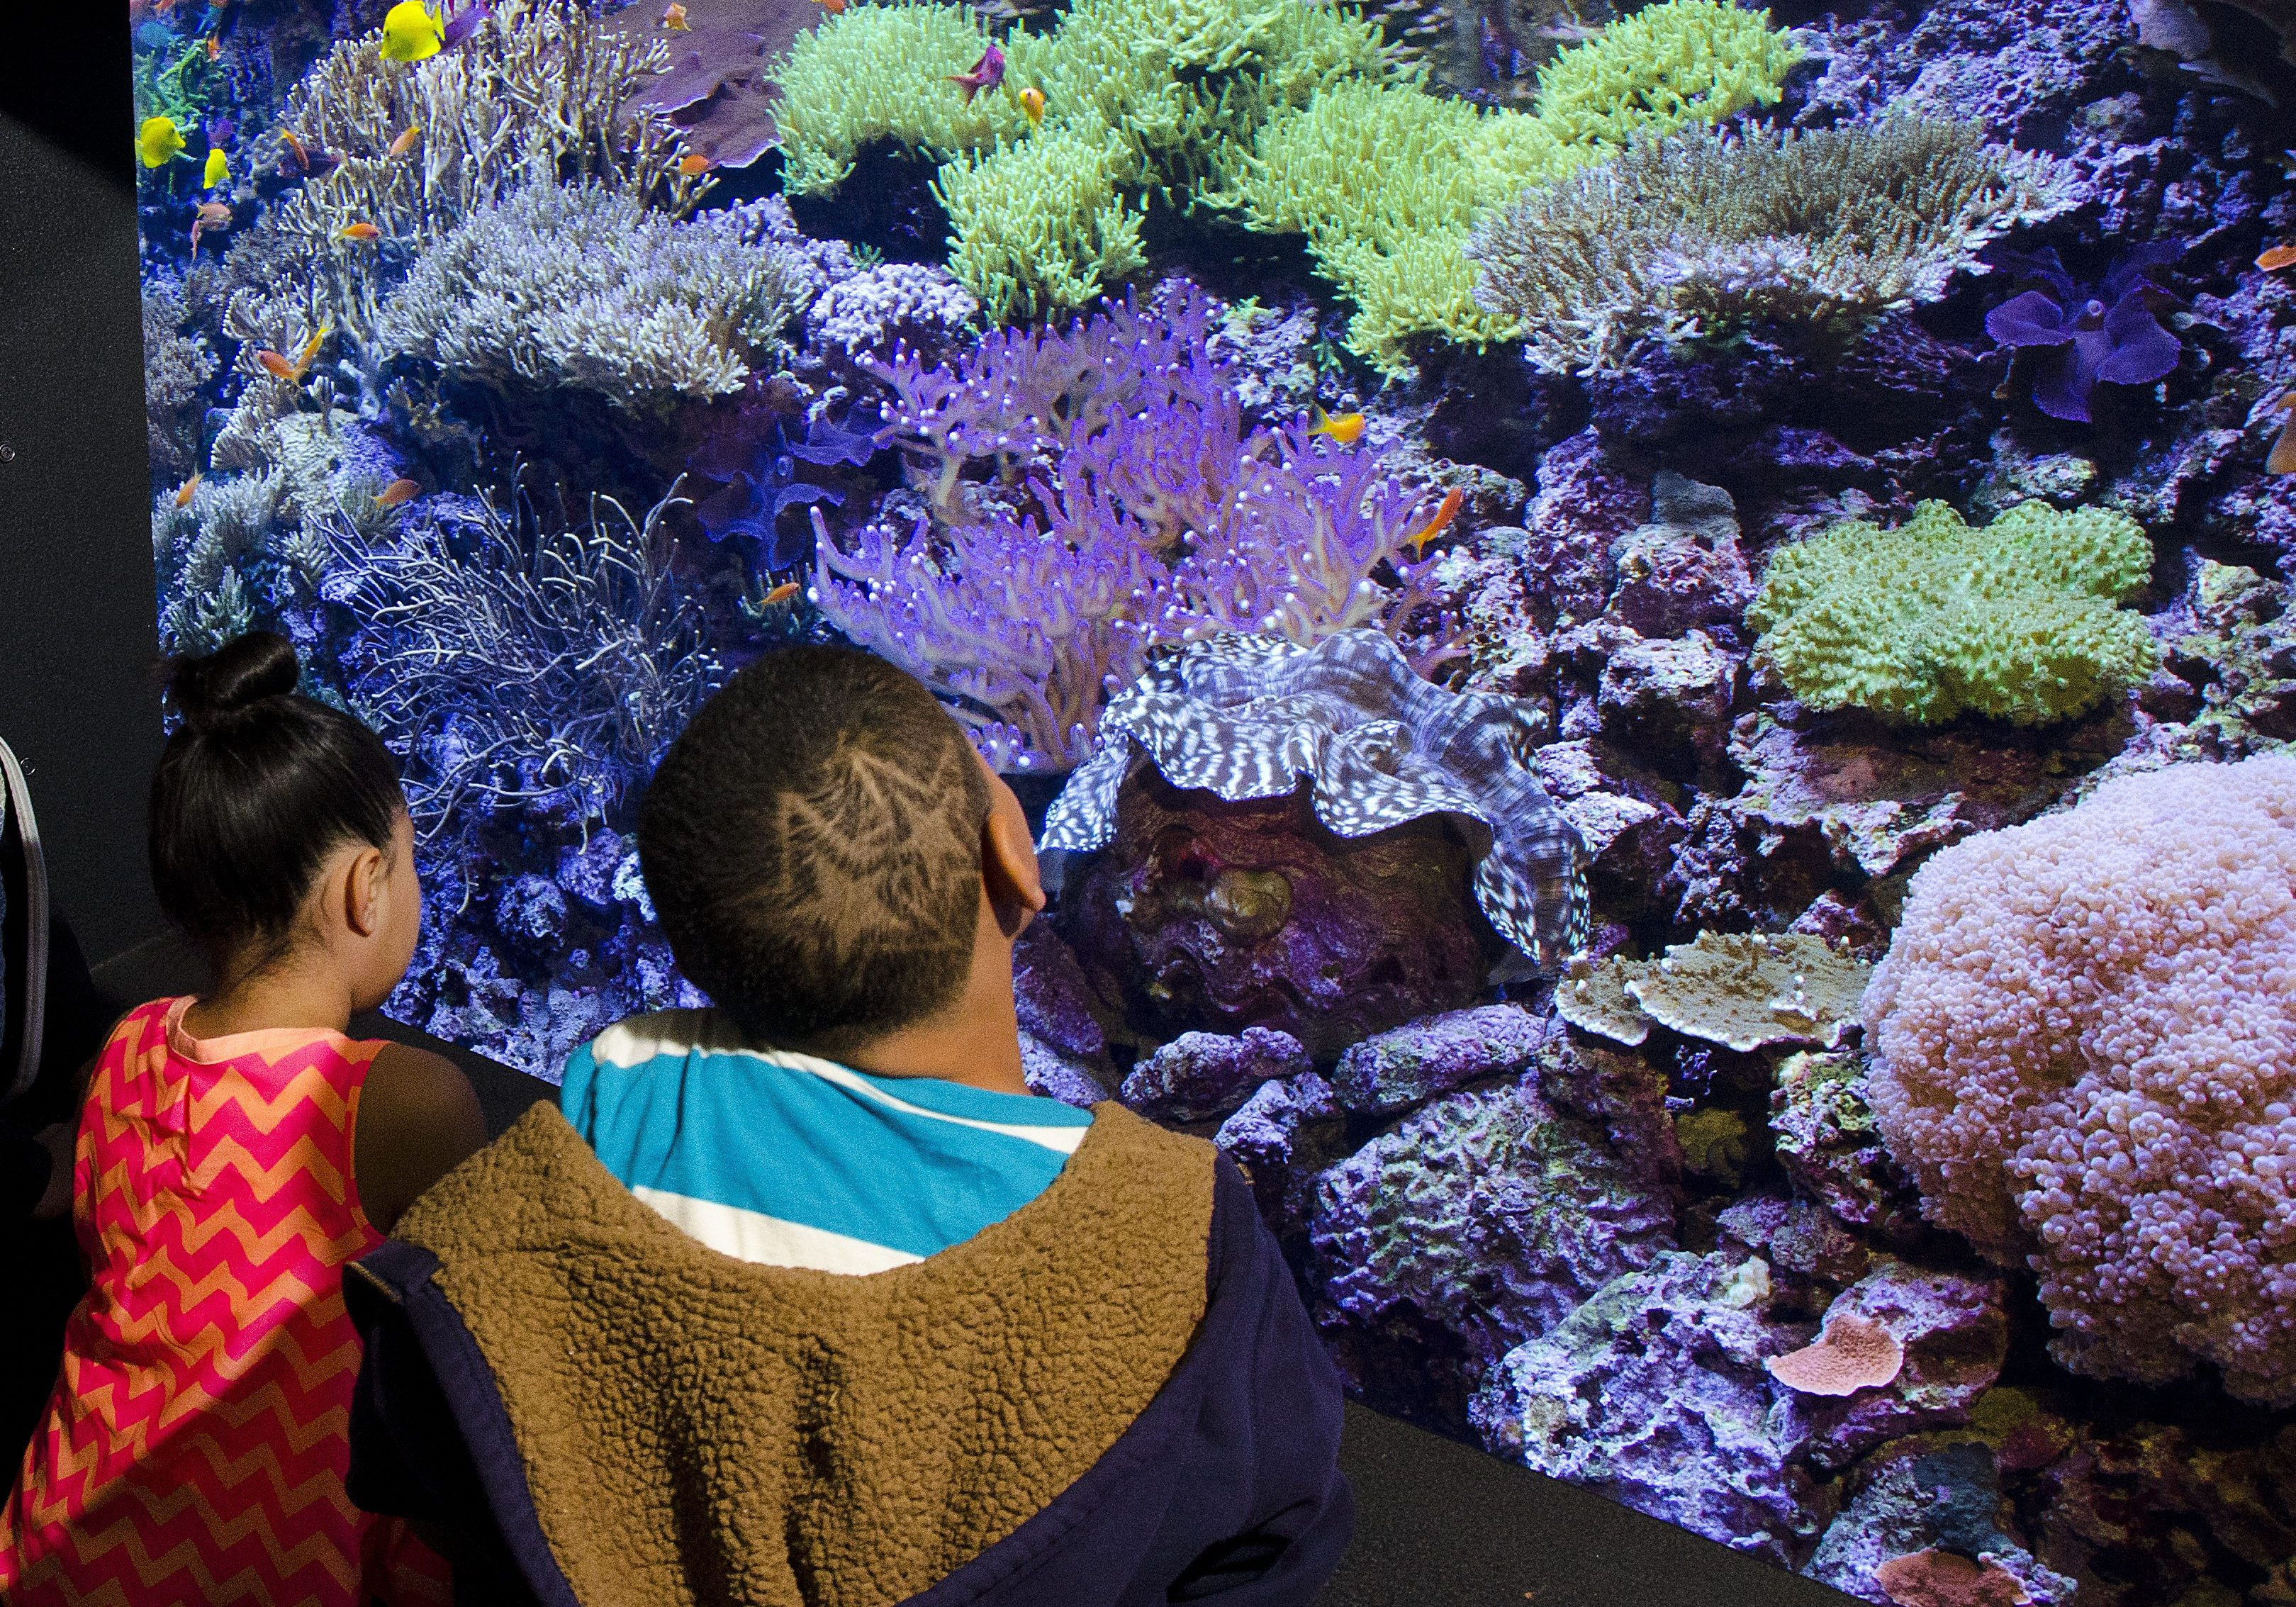 Guests discovering the coral reef at Seattle Aquarium